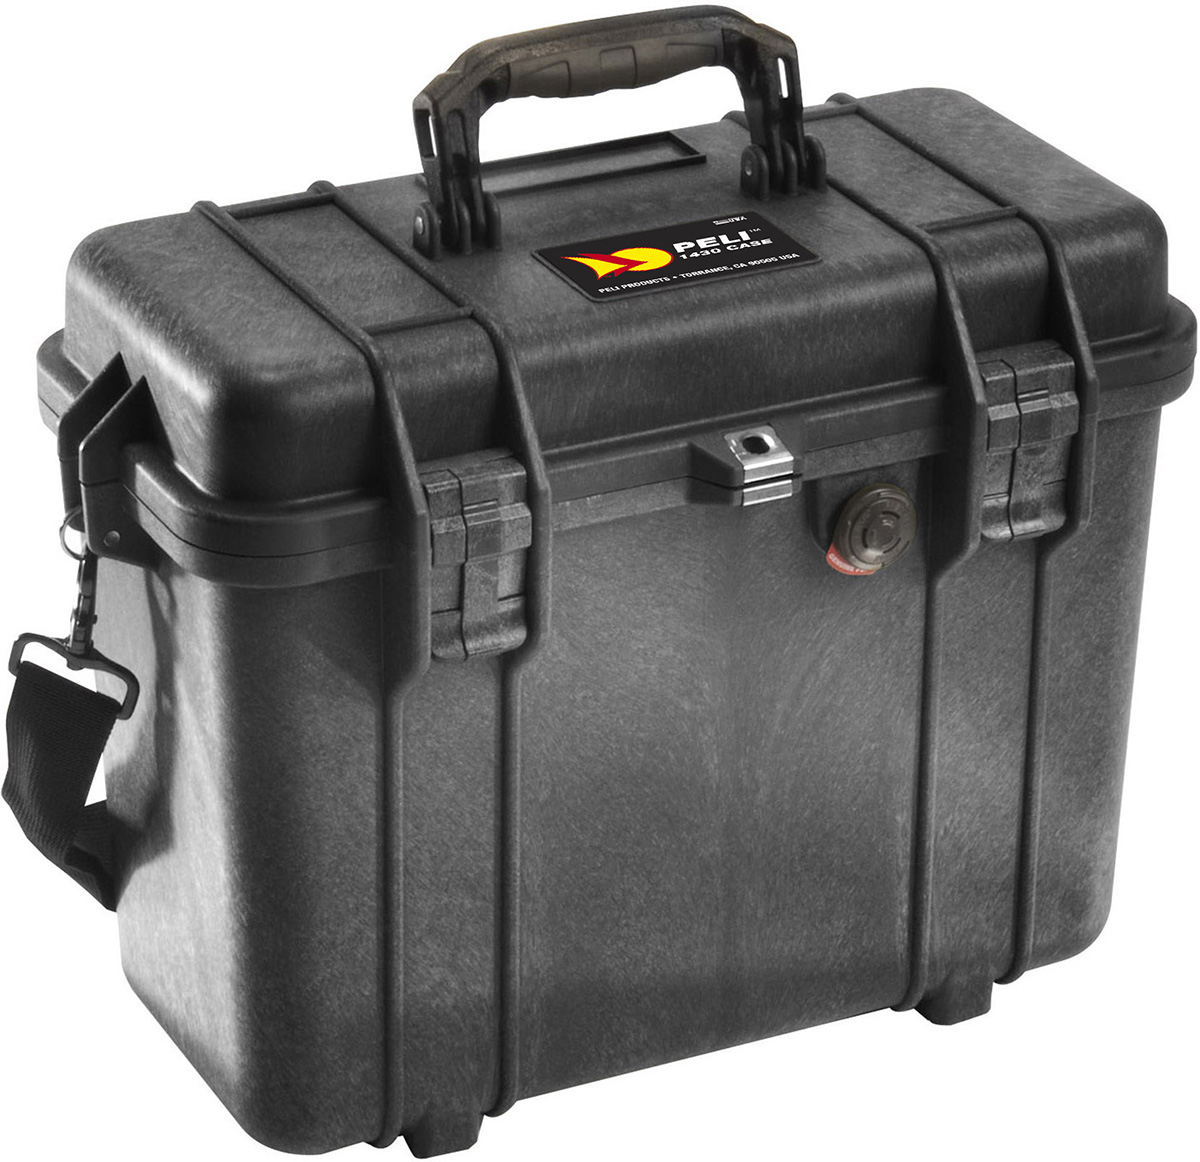 peli pelican products 1430 motorcycle top loaing hard case